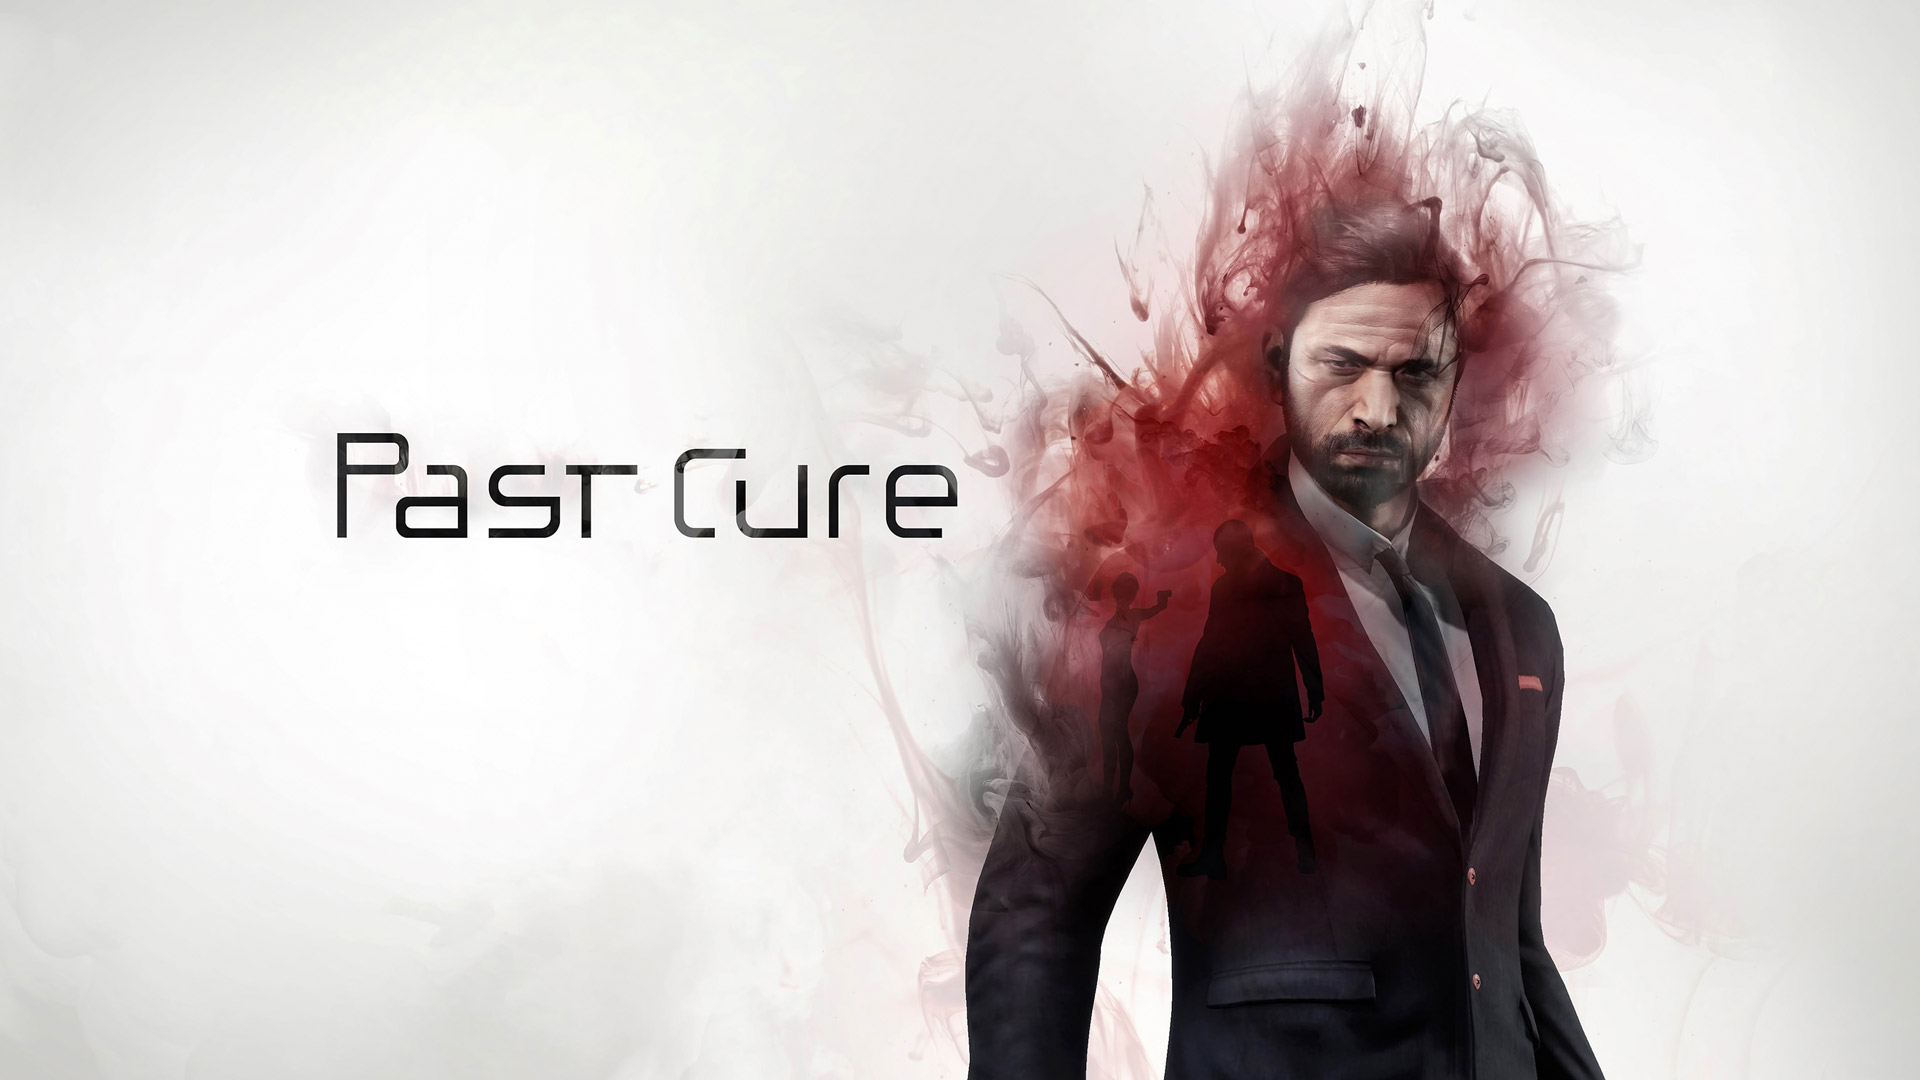 Past Cure Wallpaper in 1920x1080